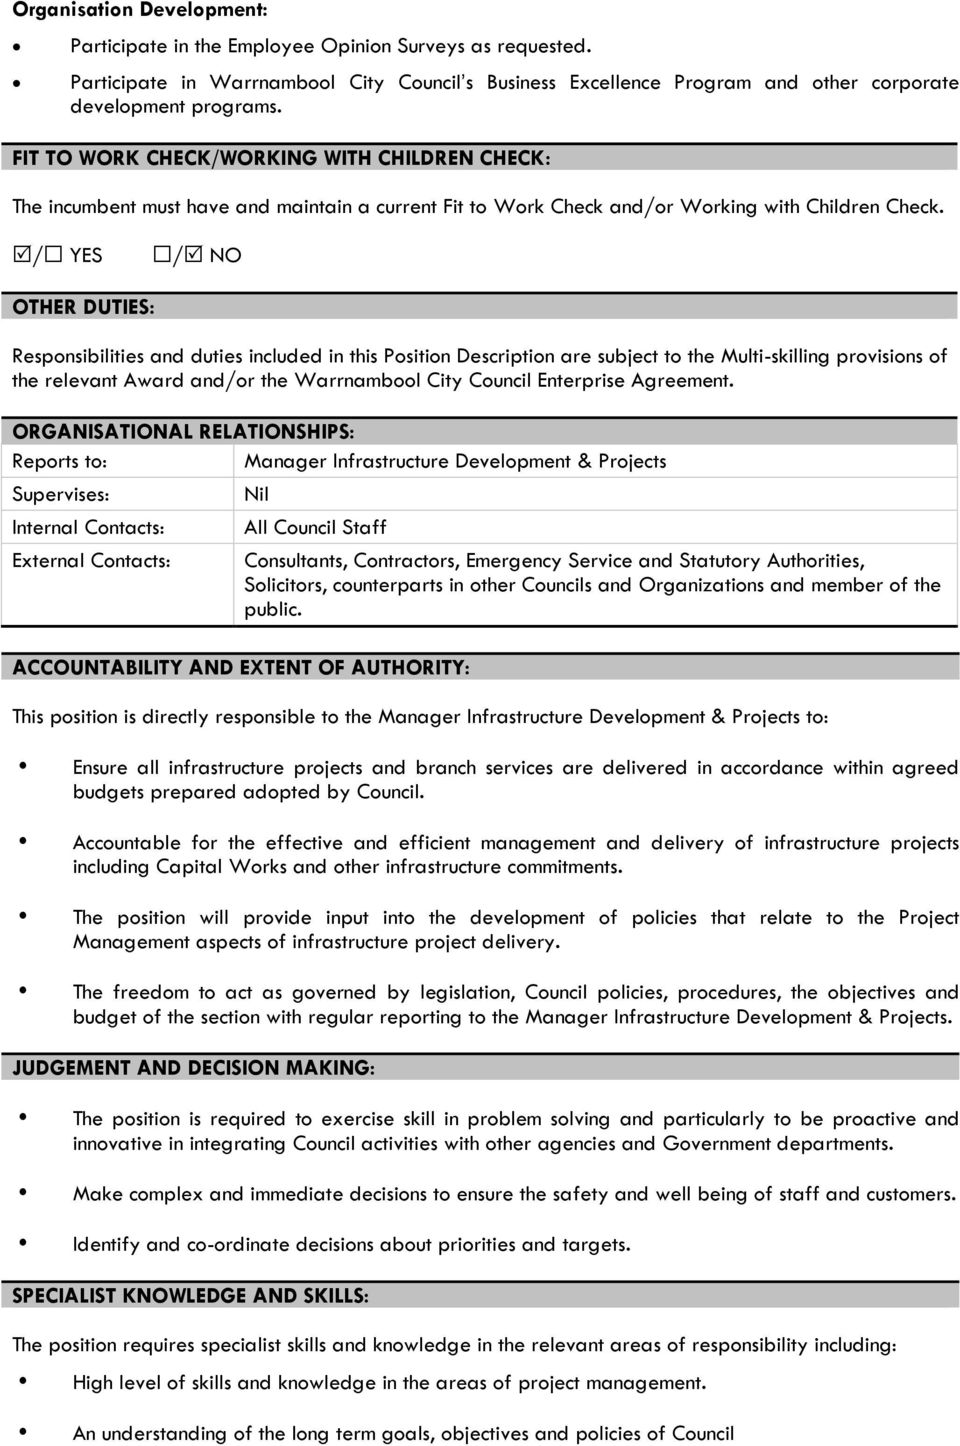 / YES / NO OTHER DUTIES: Responsibilities and duties included in this Position Description are subject to the Multi-skilling provisions of the relevant Award and/or the Warrnambool City Council